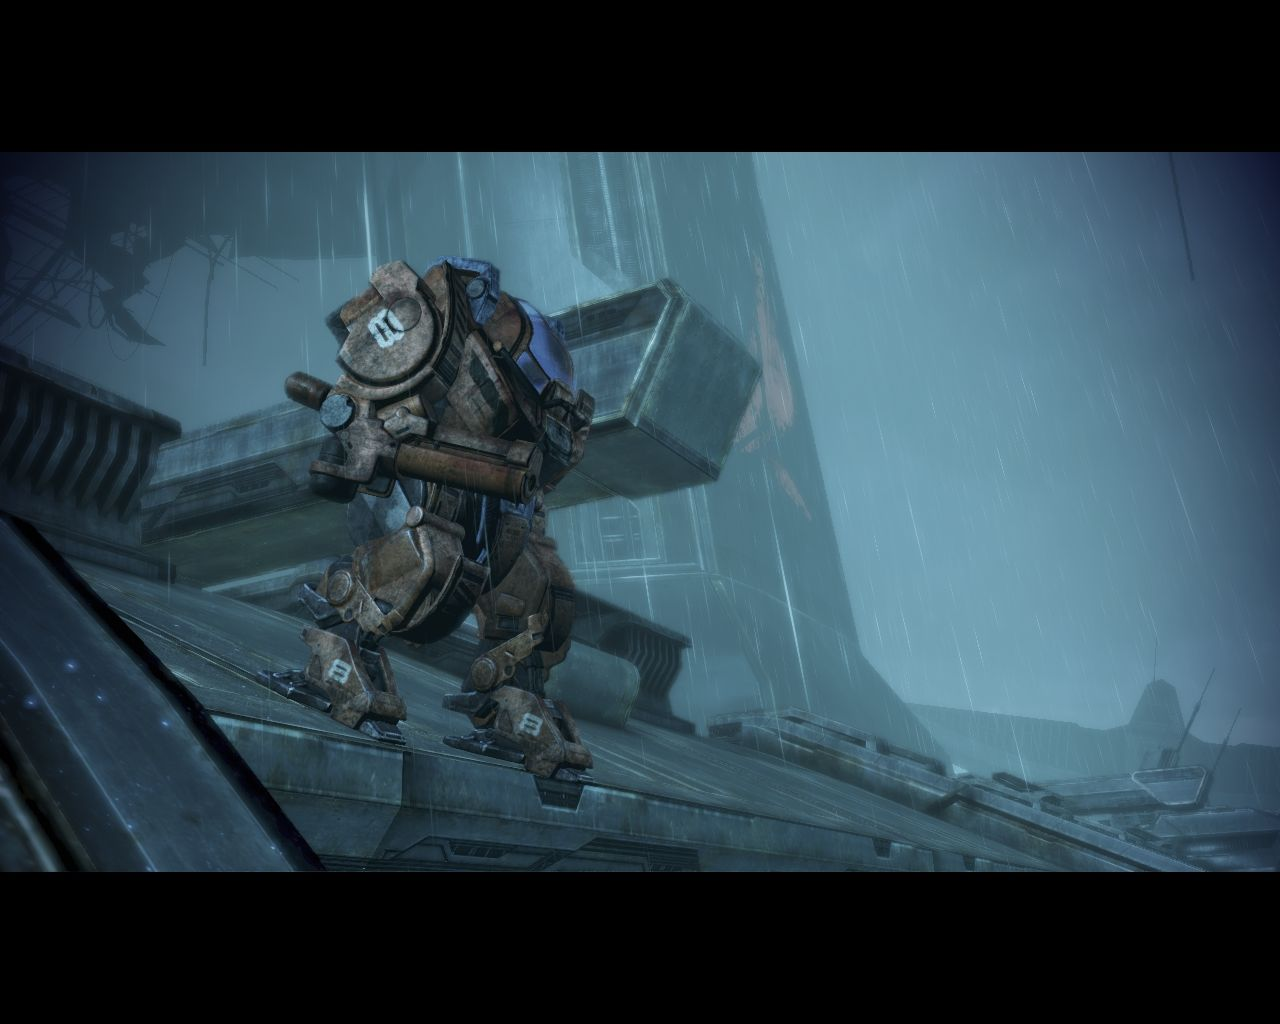 Mass Effect 3: Leviathan Windows Cut scene of the mech's first stride, with Shepard inside it.